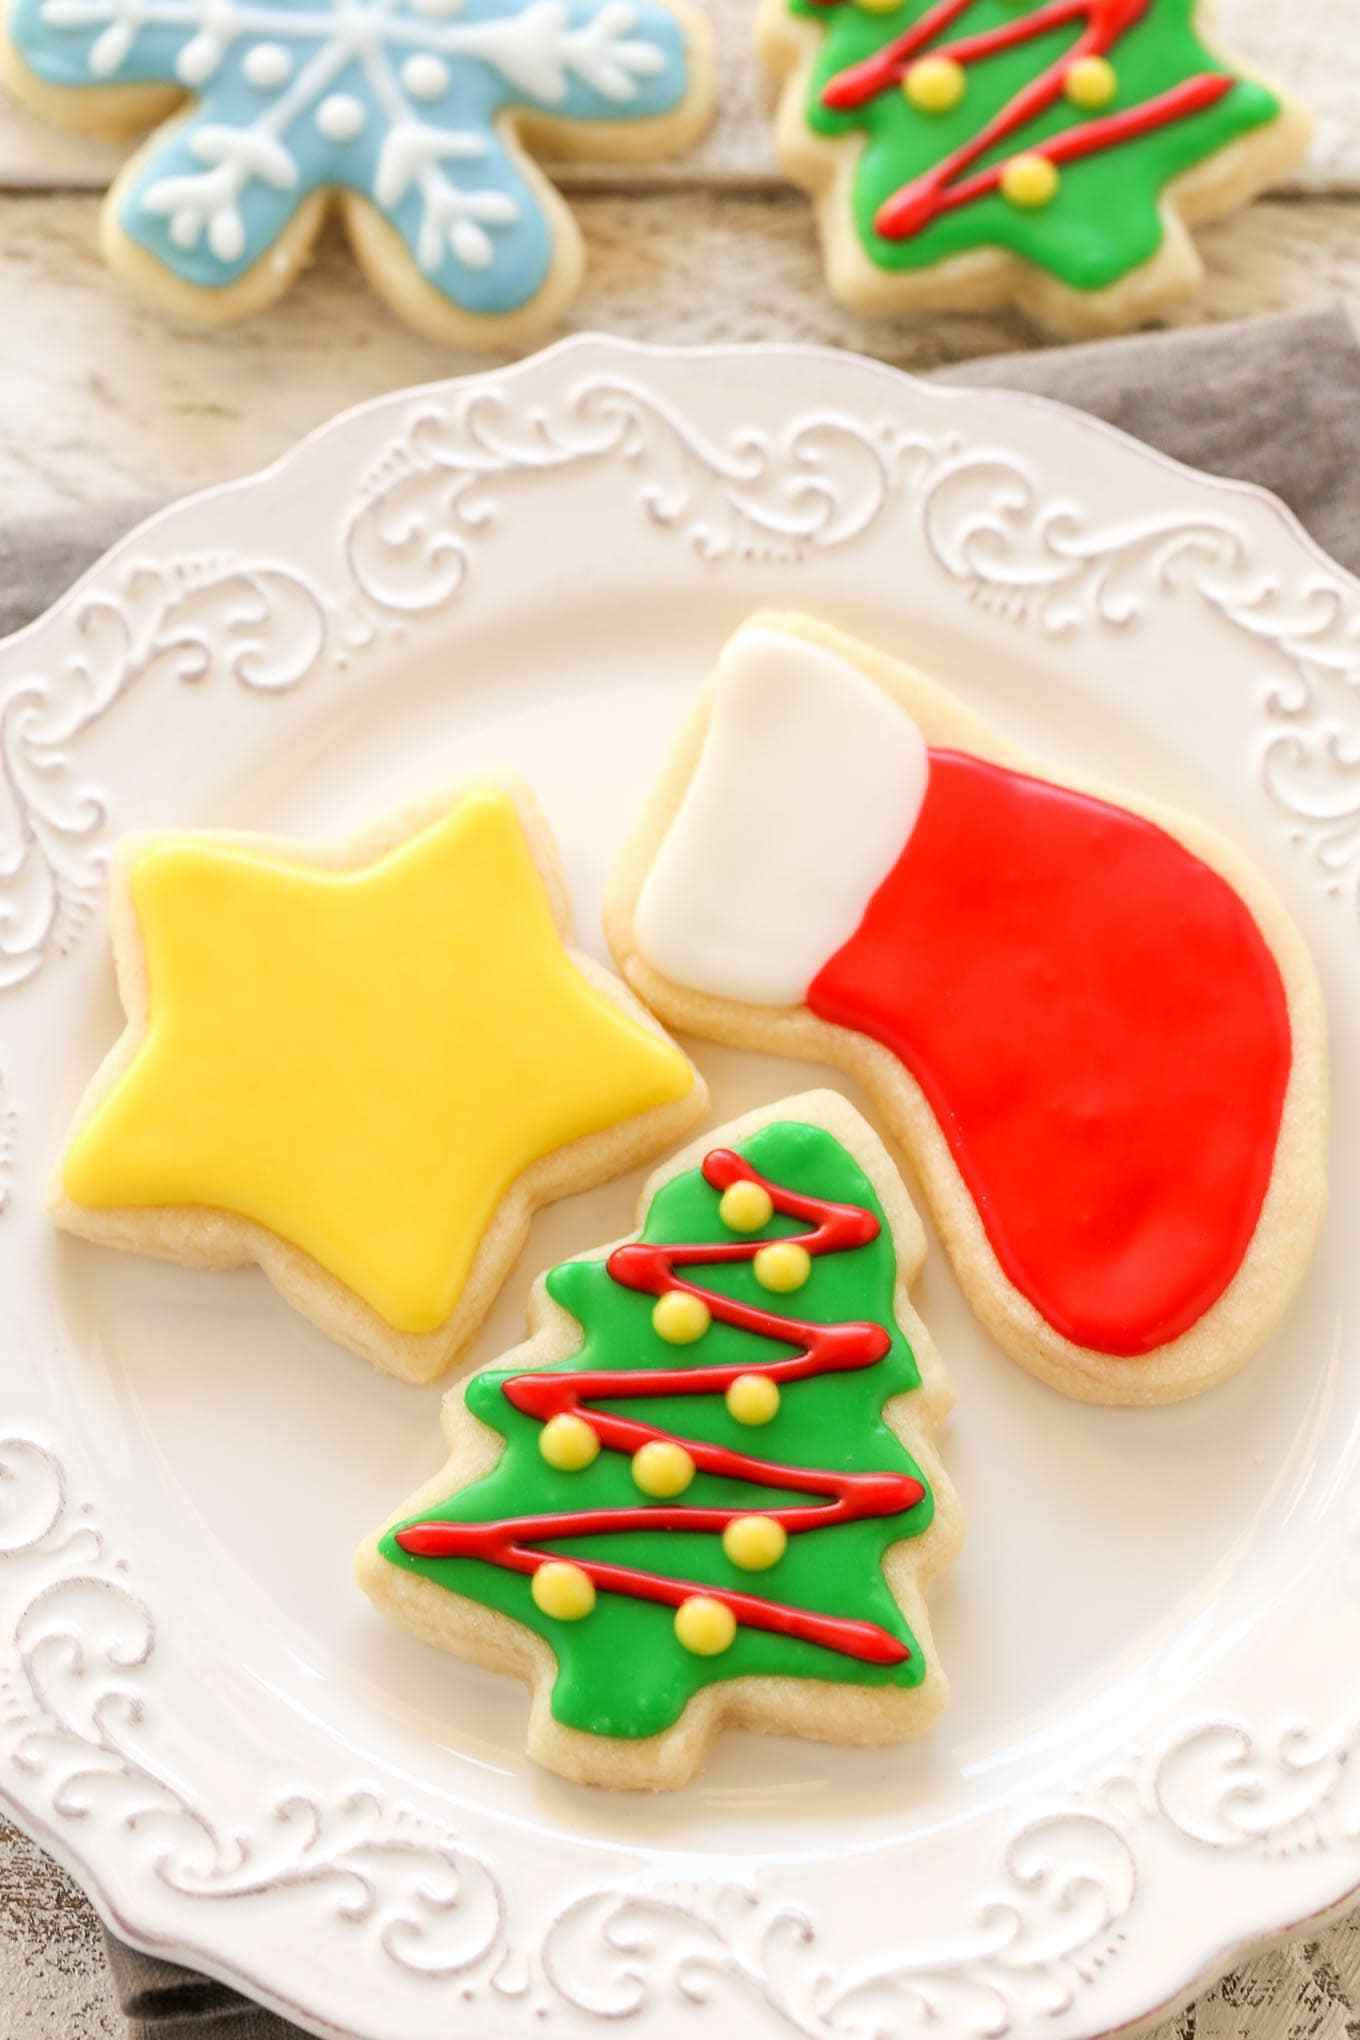 Frosting For Christmas Cookies  Soft Christmas Cut Out Sugar Cookies Live Well Bake ten